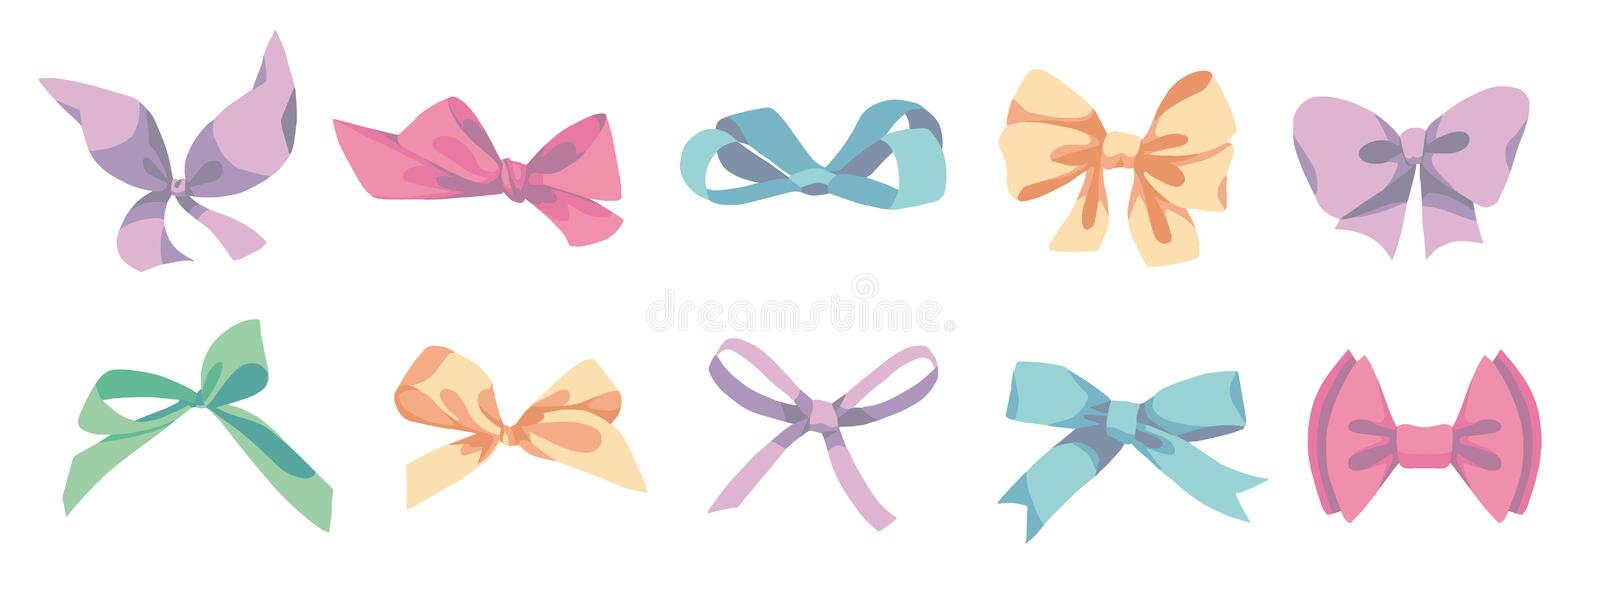 Vctor drawings of different shaped colorful cartoon style ribbons royalty free illustration